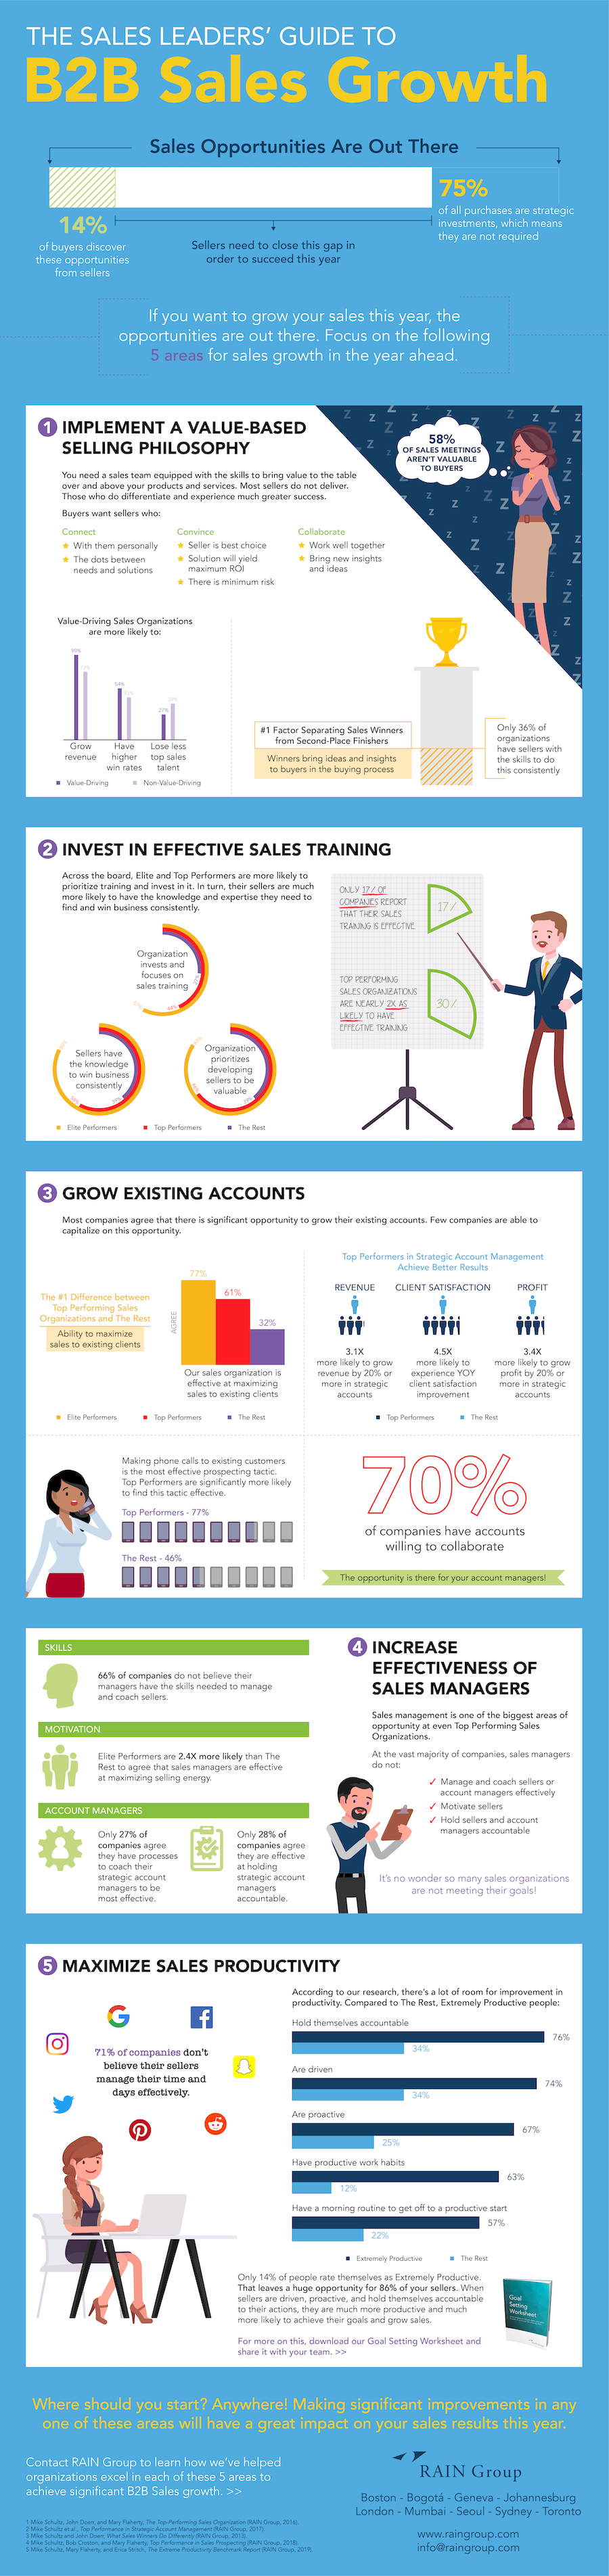 The Sales Leaders' Guide to B2B Sales Growth